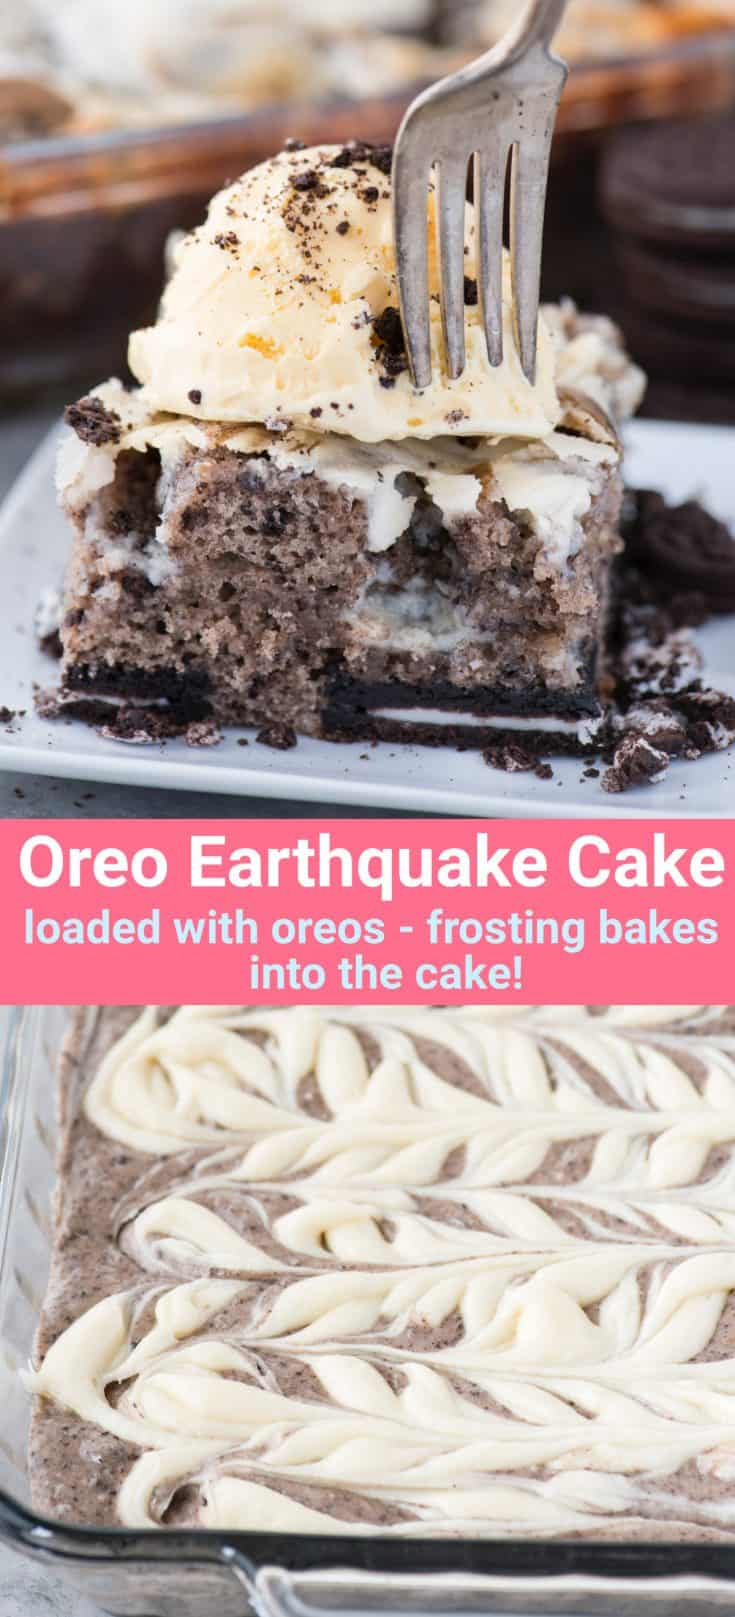 This oreo earthquake cake is a white cake mix loaded with whole oreos and oreo crumbs. Swirl in the cream cheese frosting layer and it bakes into the cake creating frosting filled crevices and cracks on top of the cake. #earthquakecake #oreocake #cake